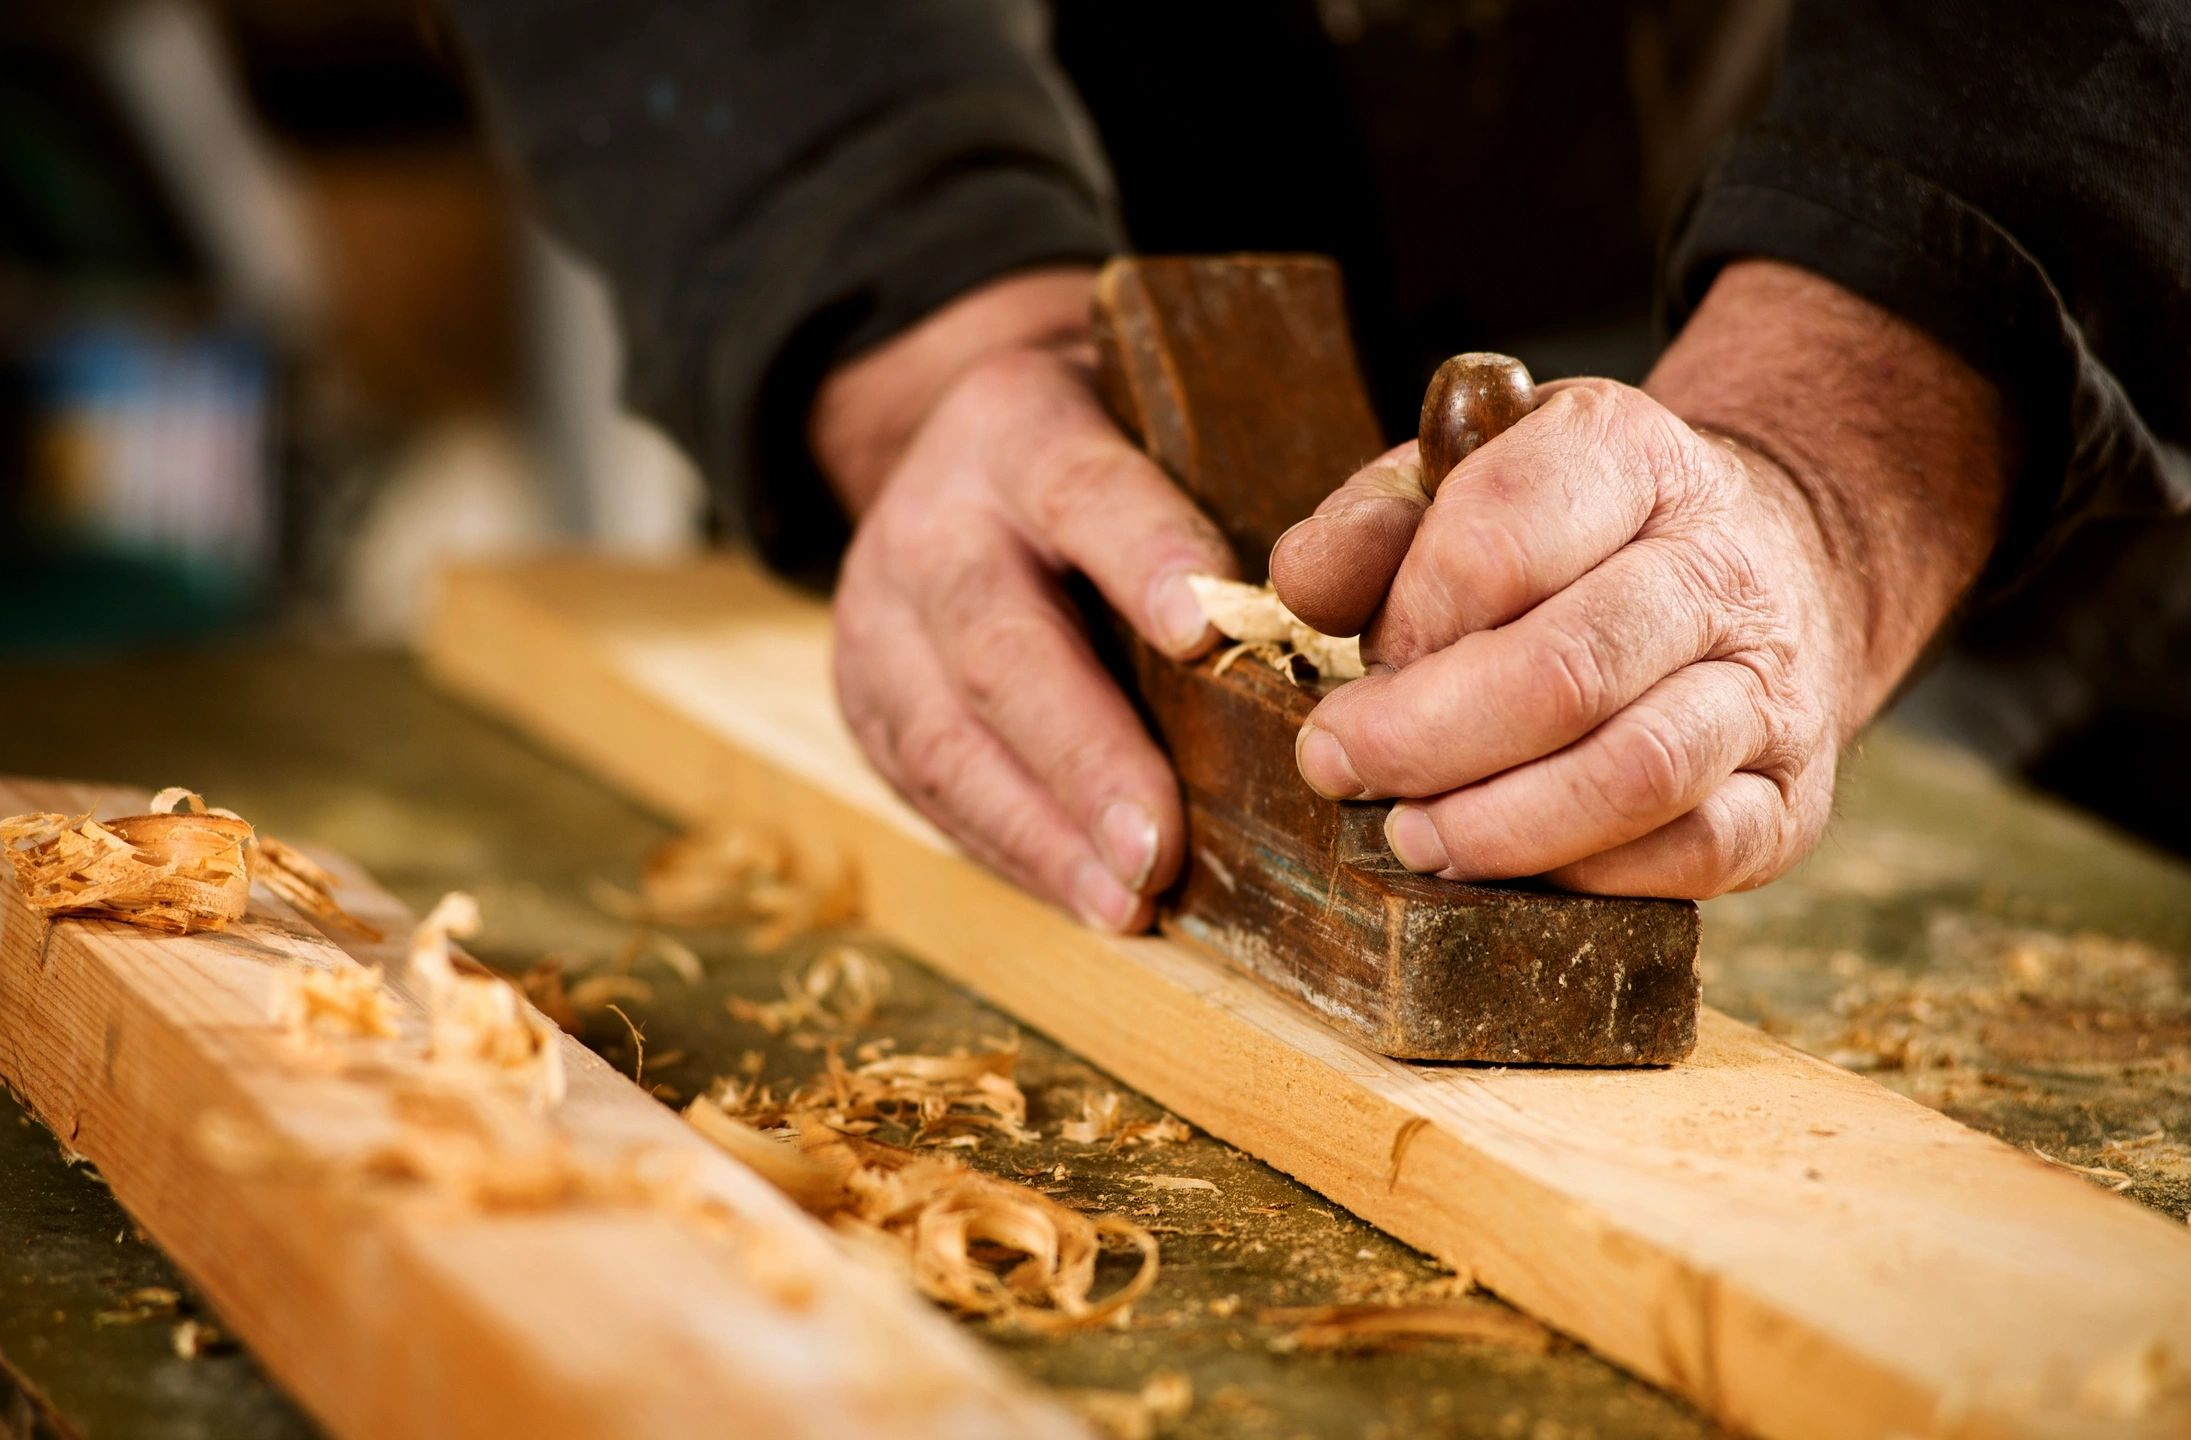 Step by step woodworking plans anyone can learn, master and implement.